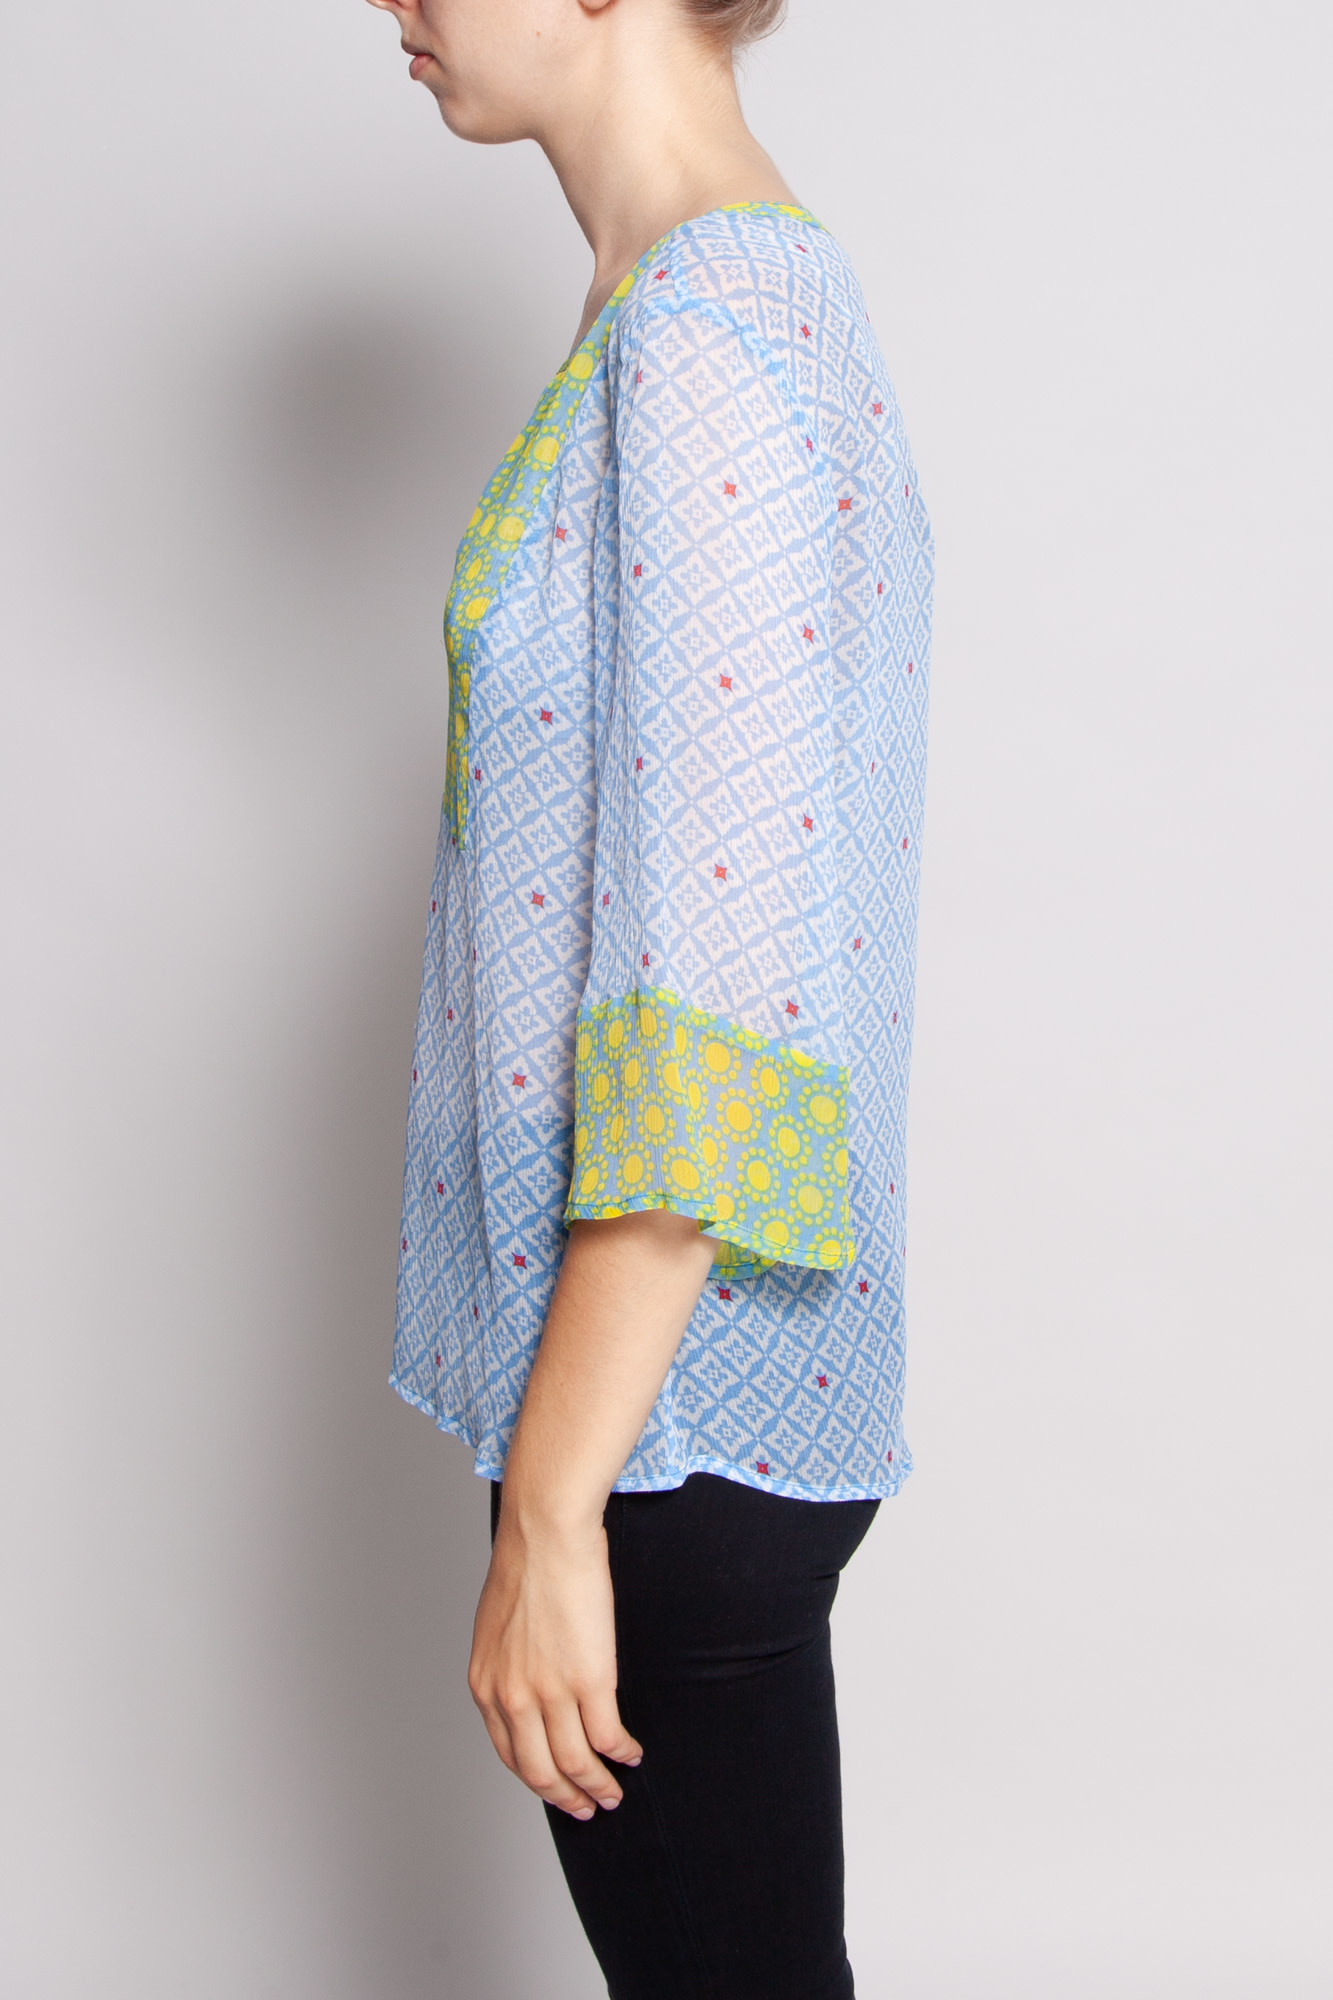 Ella Moss TRANSPARENT TOP WITH YELLOW AND BLUE PRINT WITH SCOOP NECK